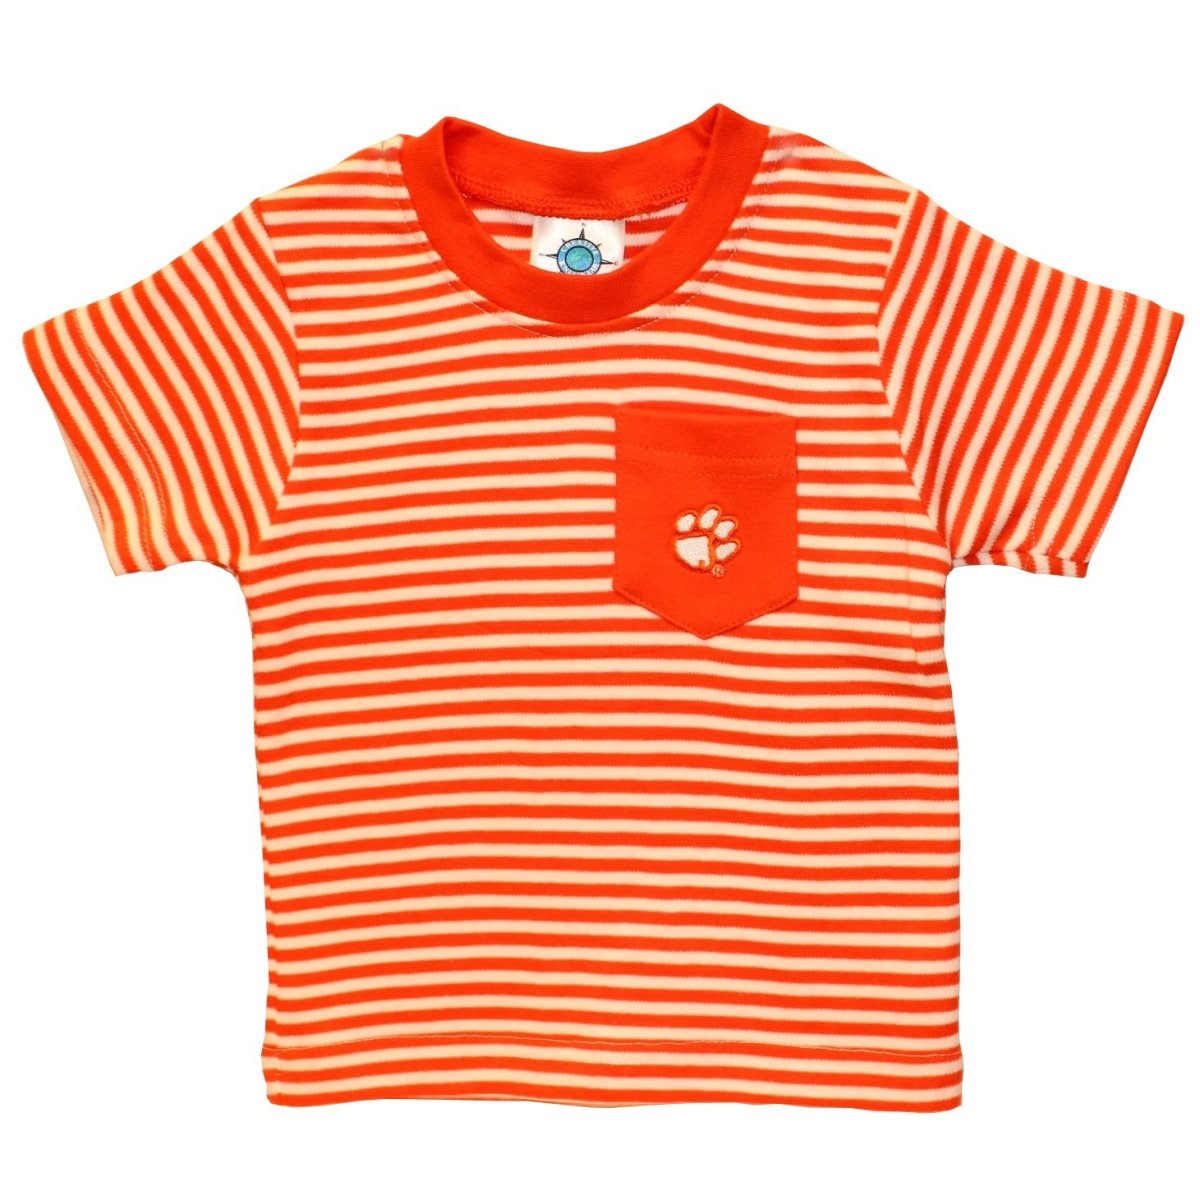 Toddler Stripe Pocket Tee - Mr. Knickerbocker